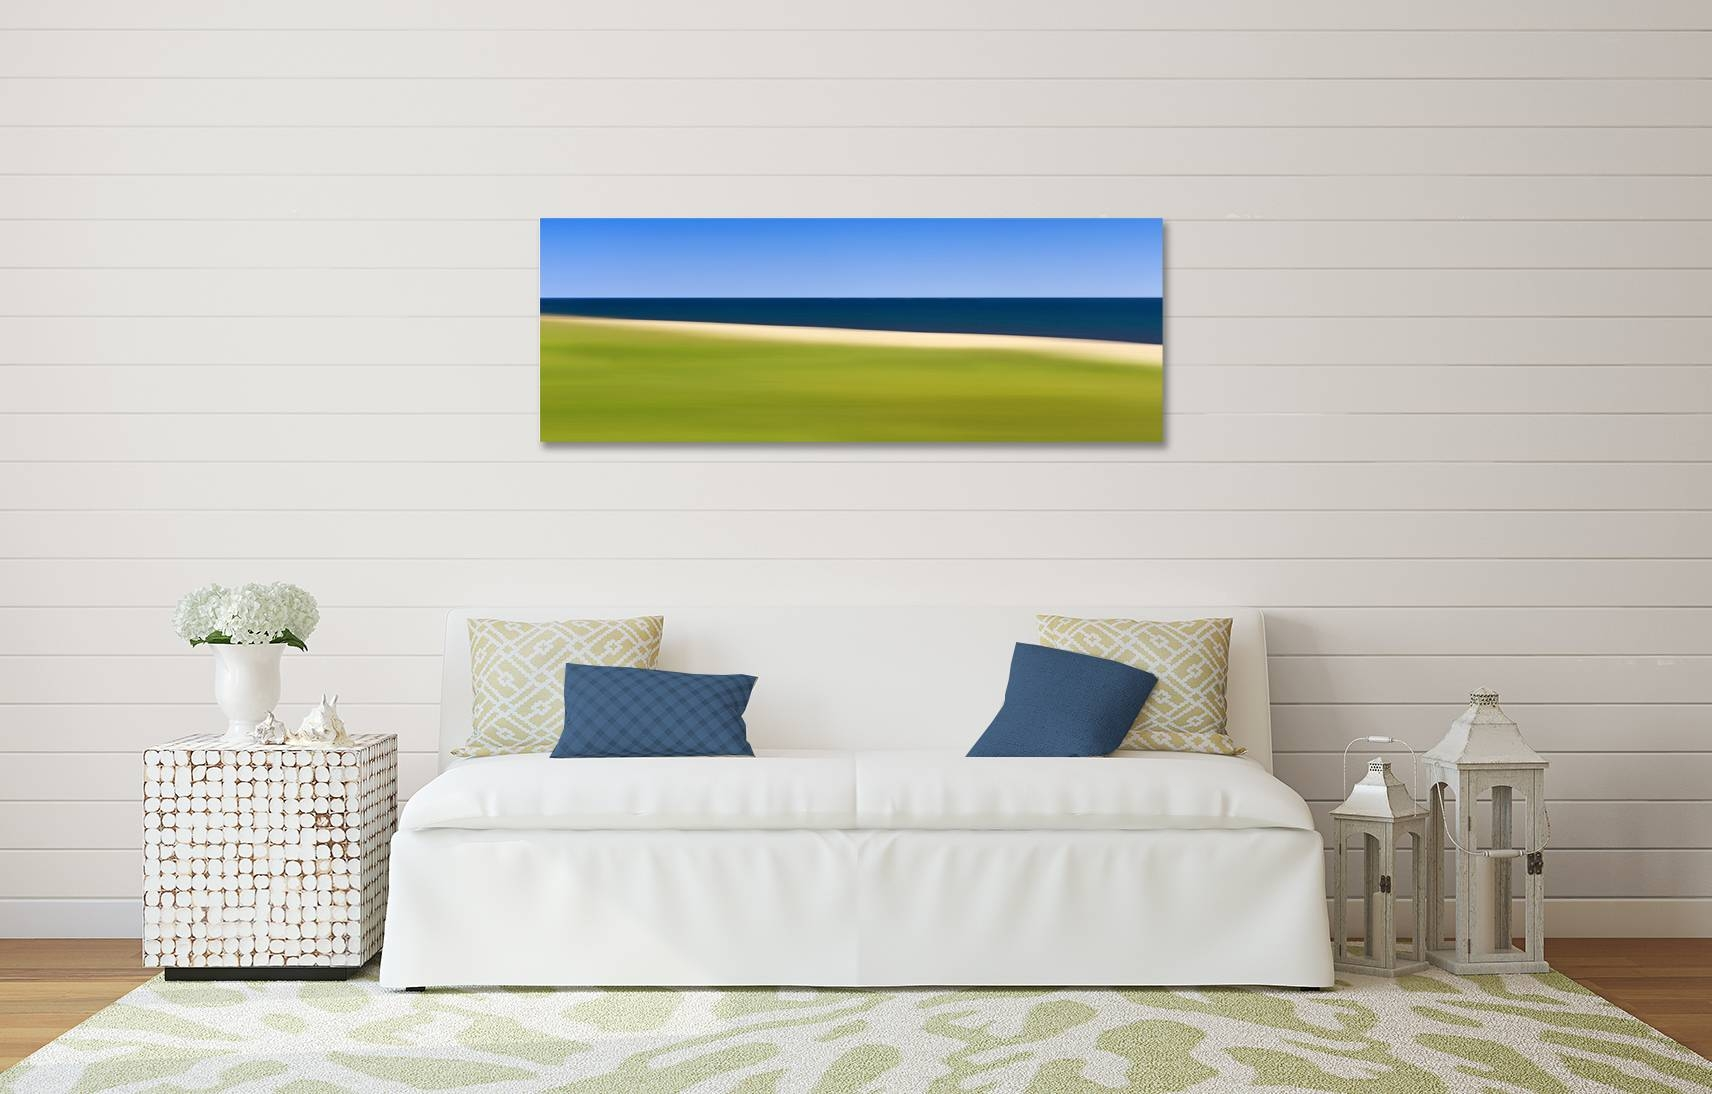 Fine Art Prints For Sale | Abstract Art, Large Canvas Wall Art For 2017 Coastal Wall Art Canvas (View 19 of 20)